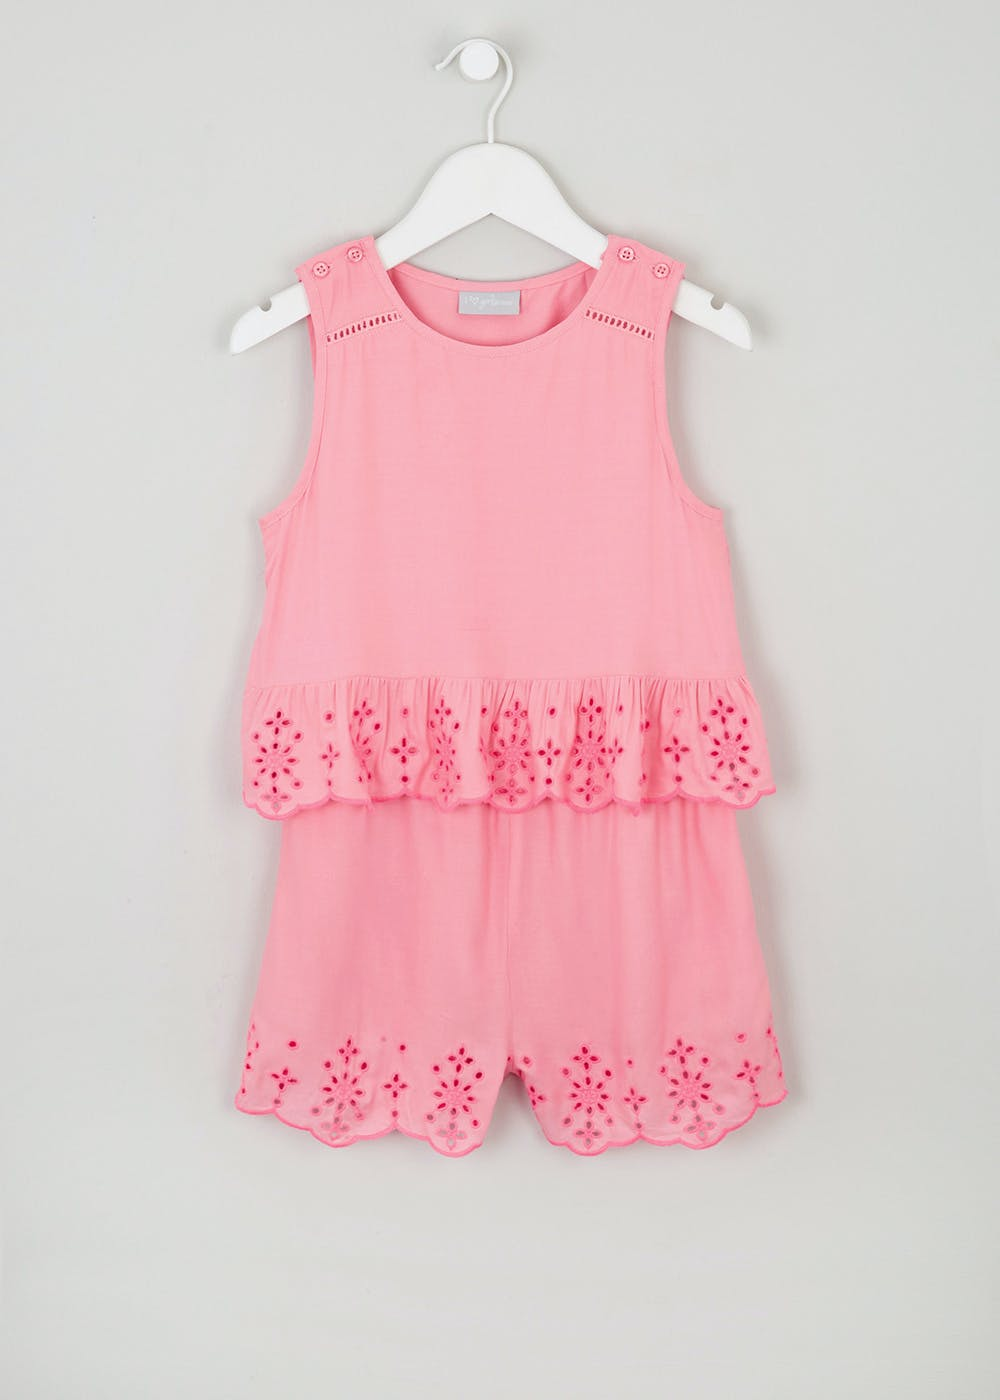 Girls' Clothing (0-24 Months) Hearty Baby Girls M&s 3-6 Months Dresses New Varieties Are Introduced One After Another